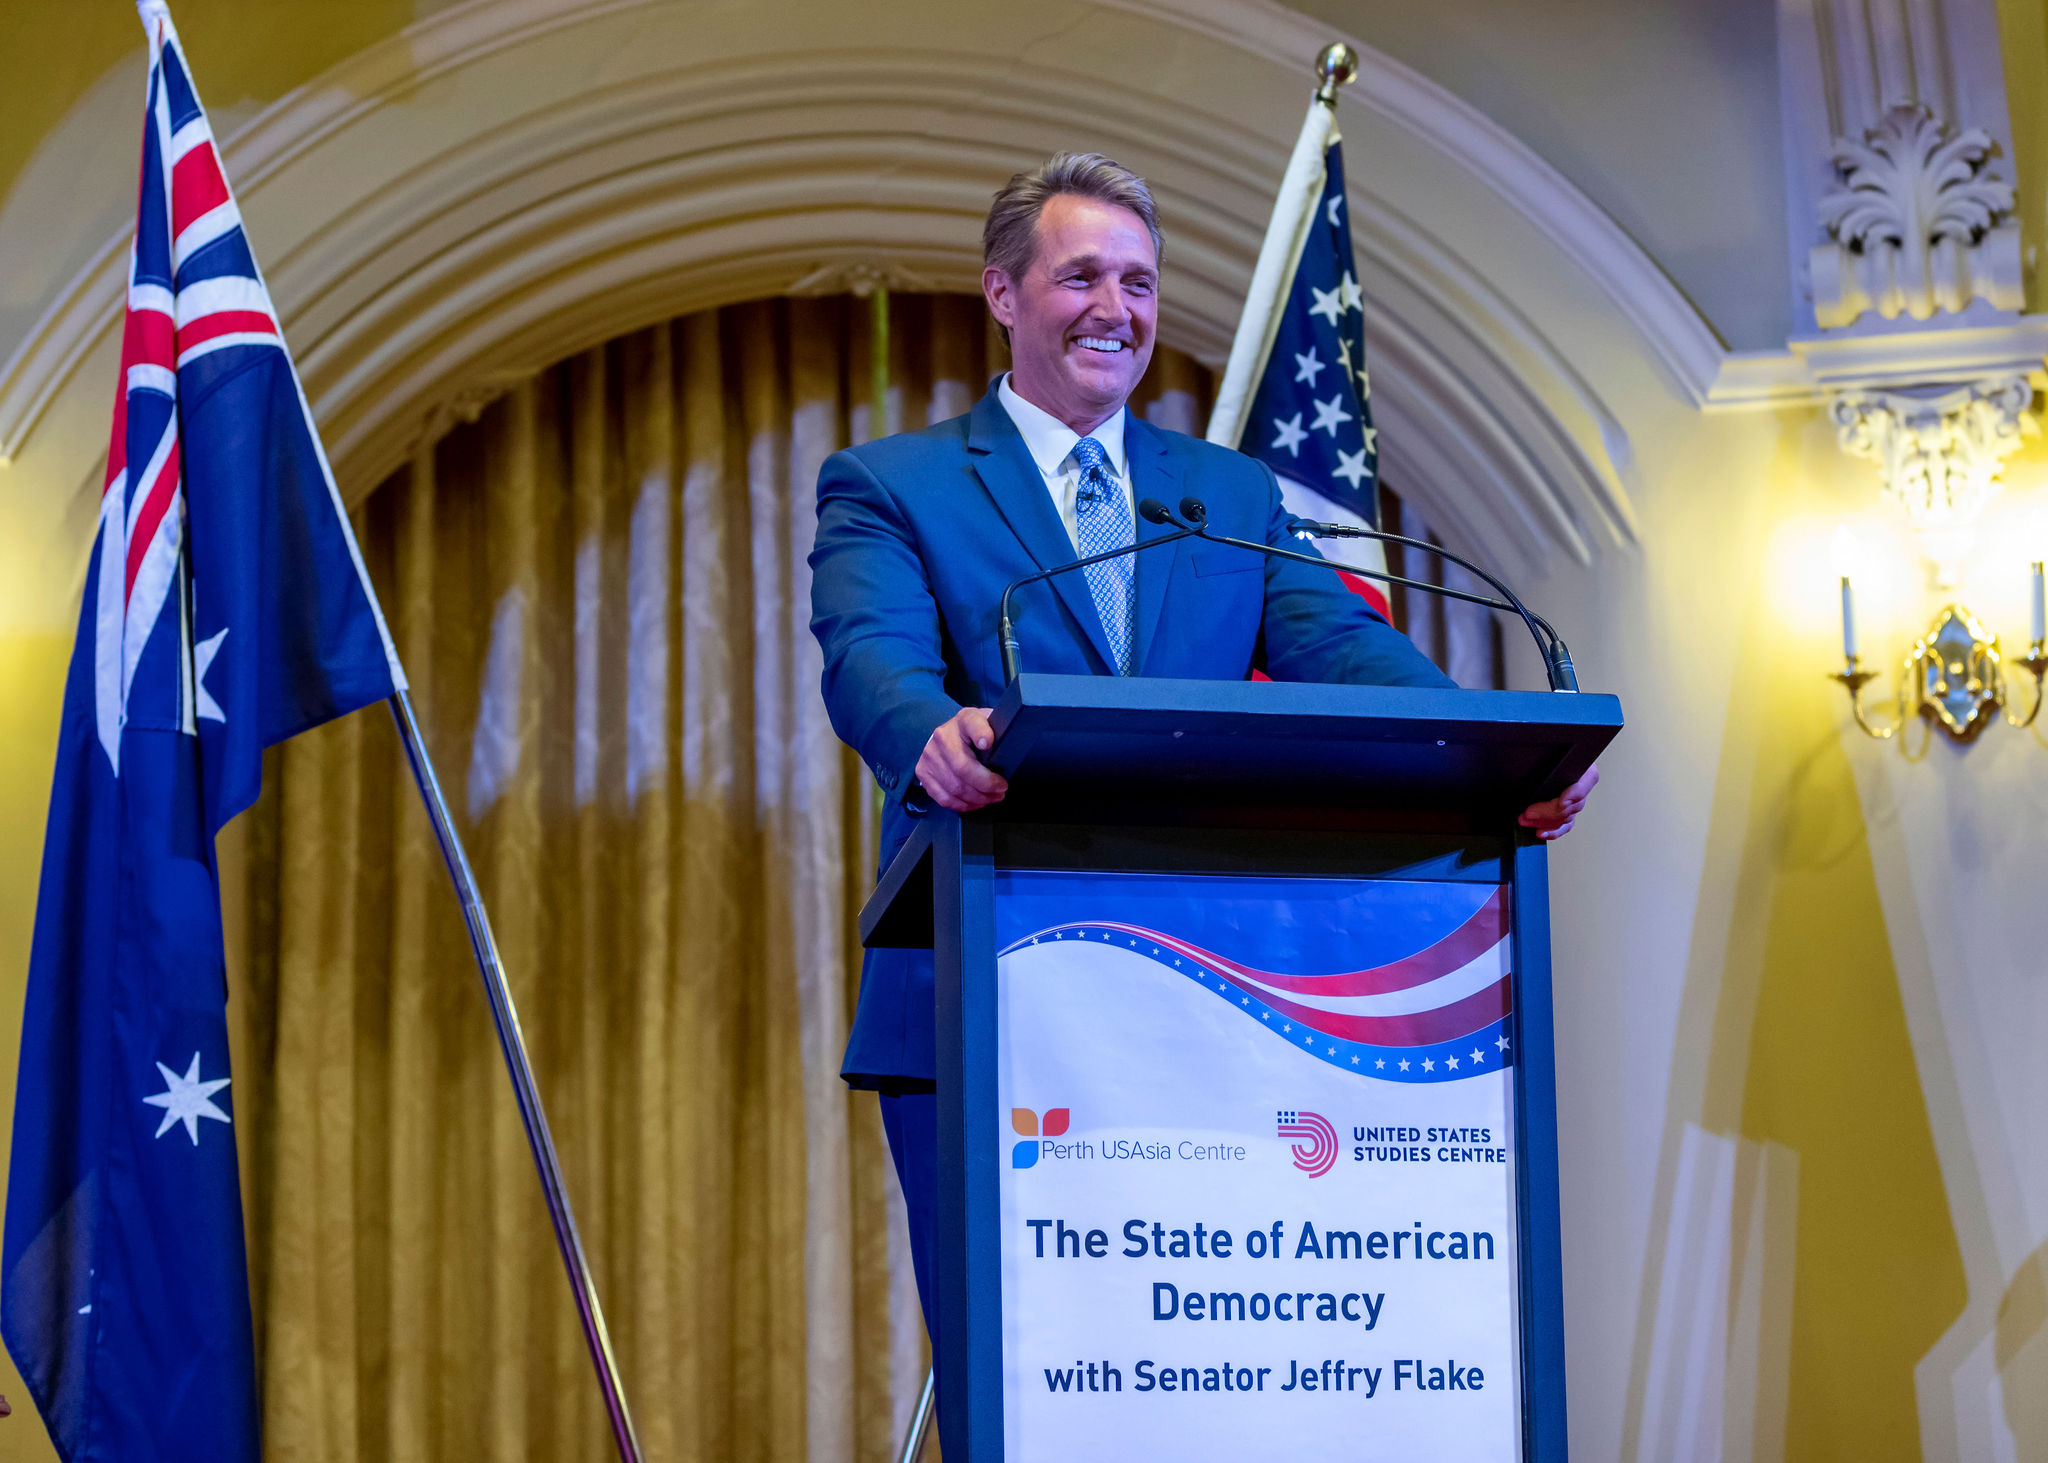 The Conscience of American Democracy: the Visit of Former U.S. Senator Jeff Flake